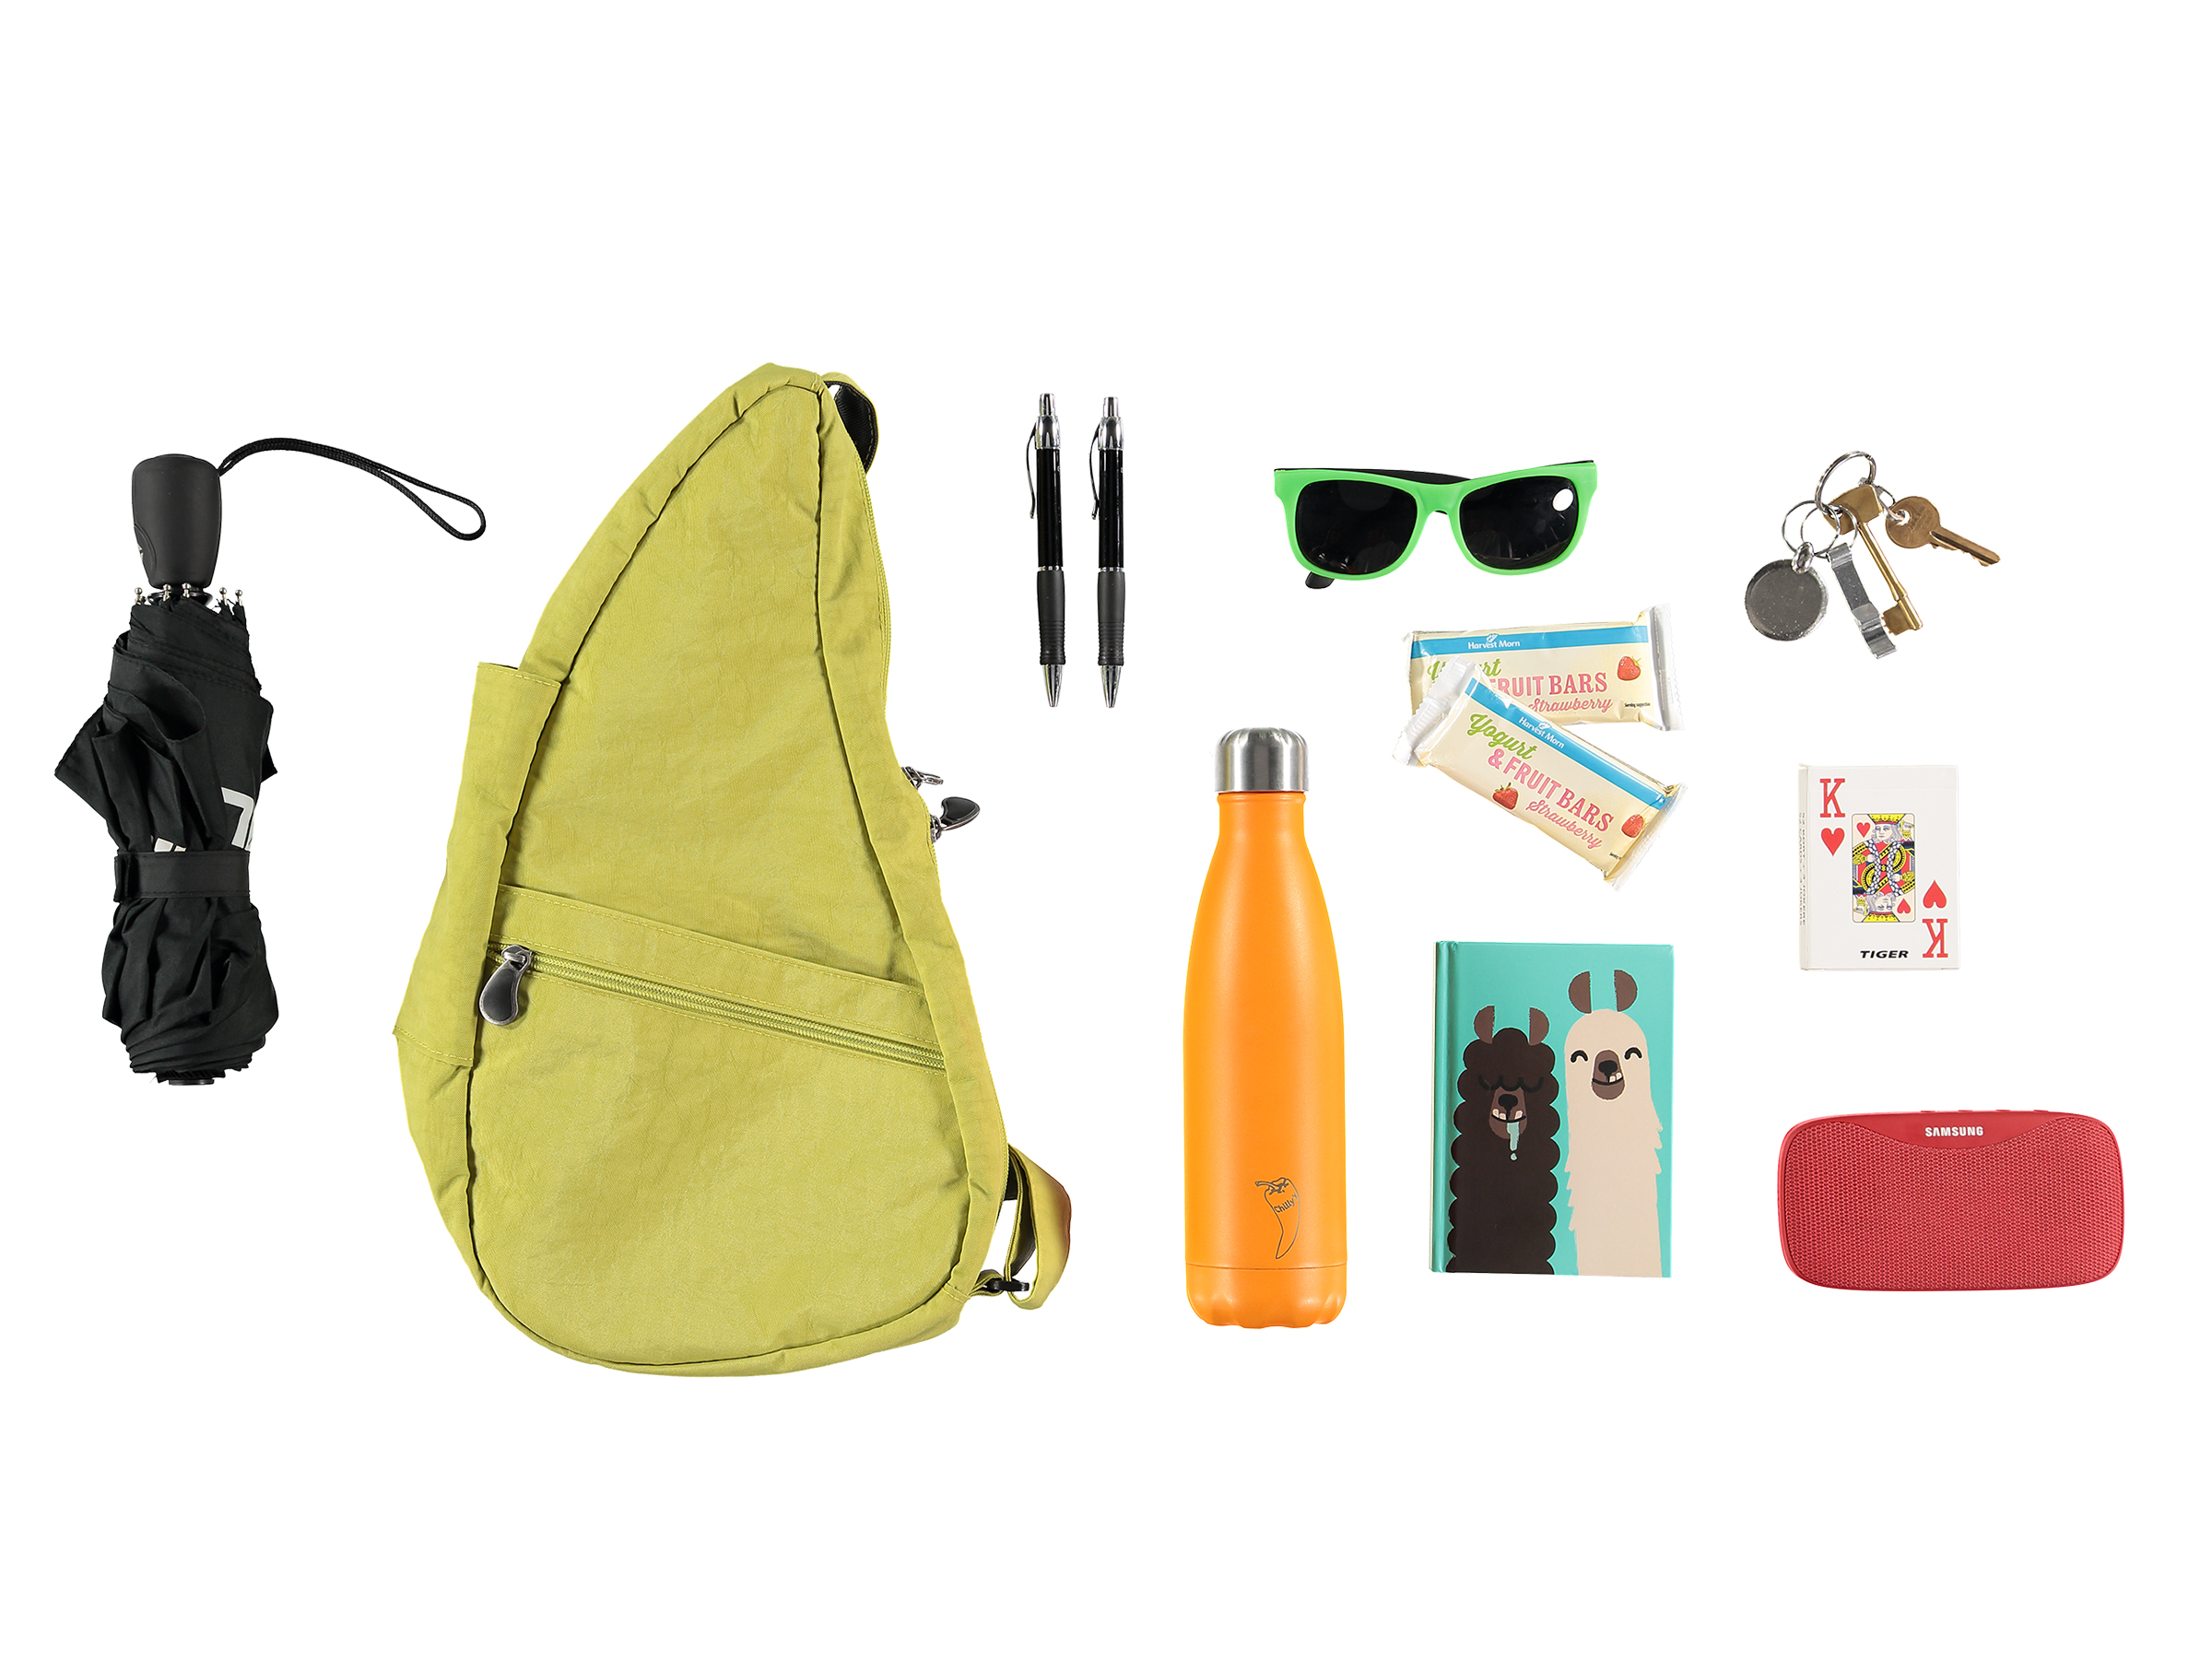 Here's a knolling using a Healthy Back Bag